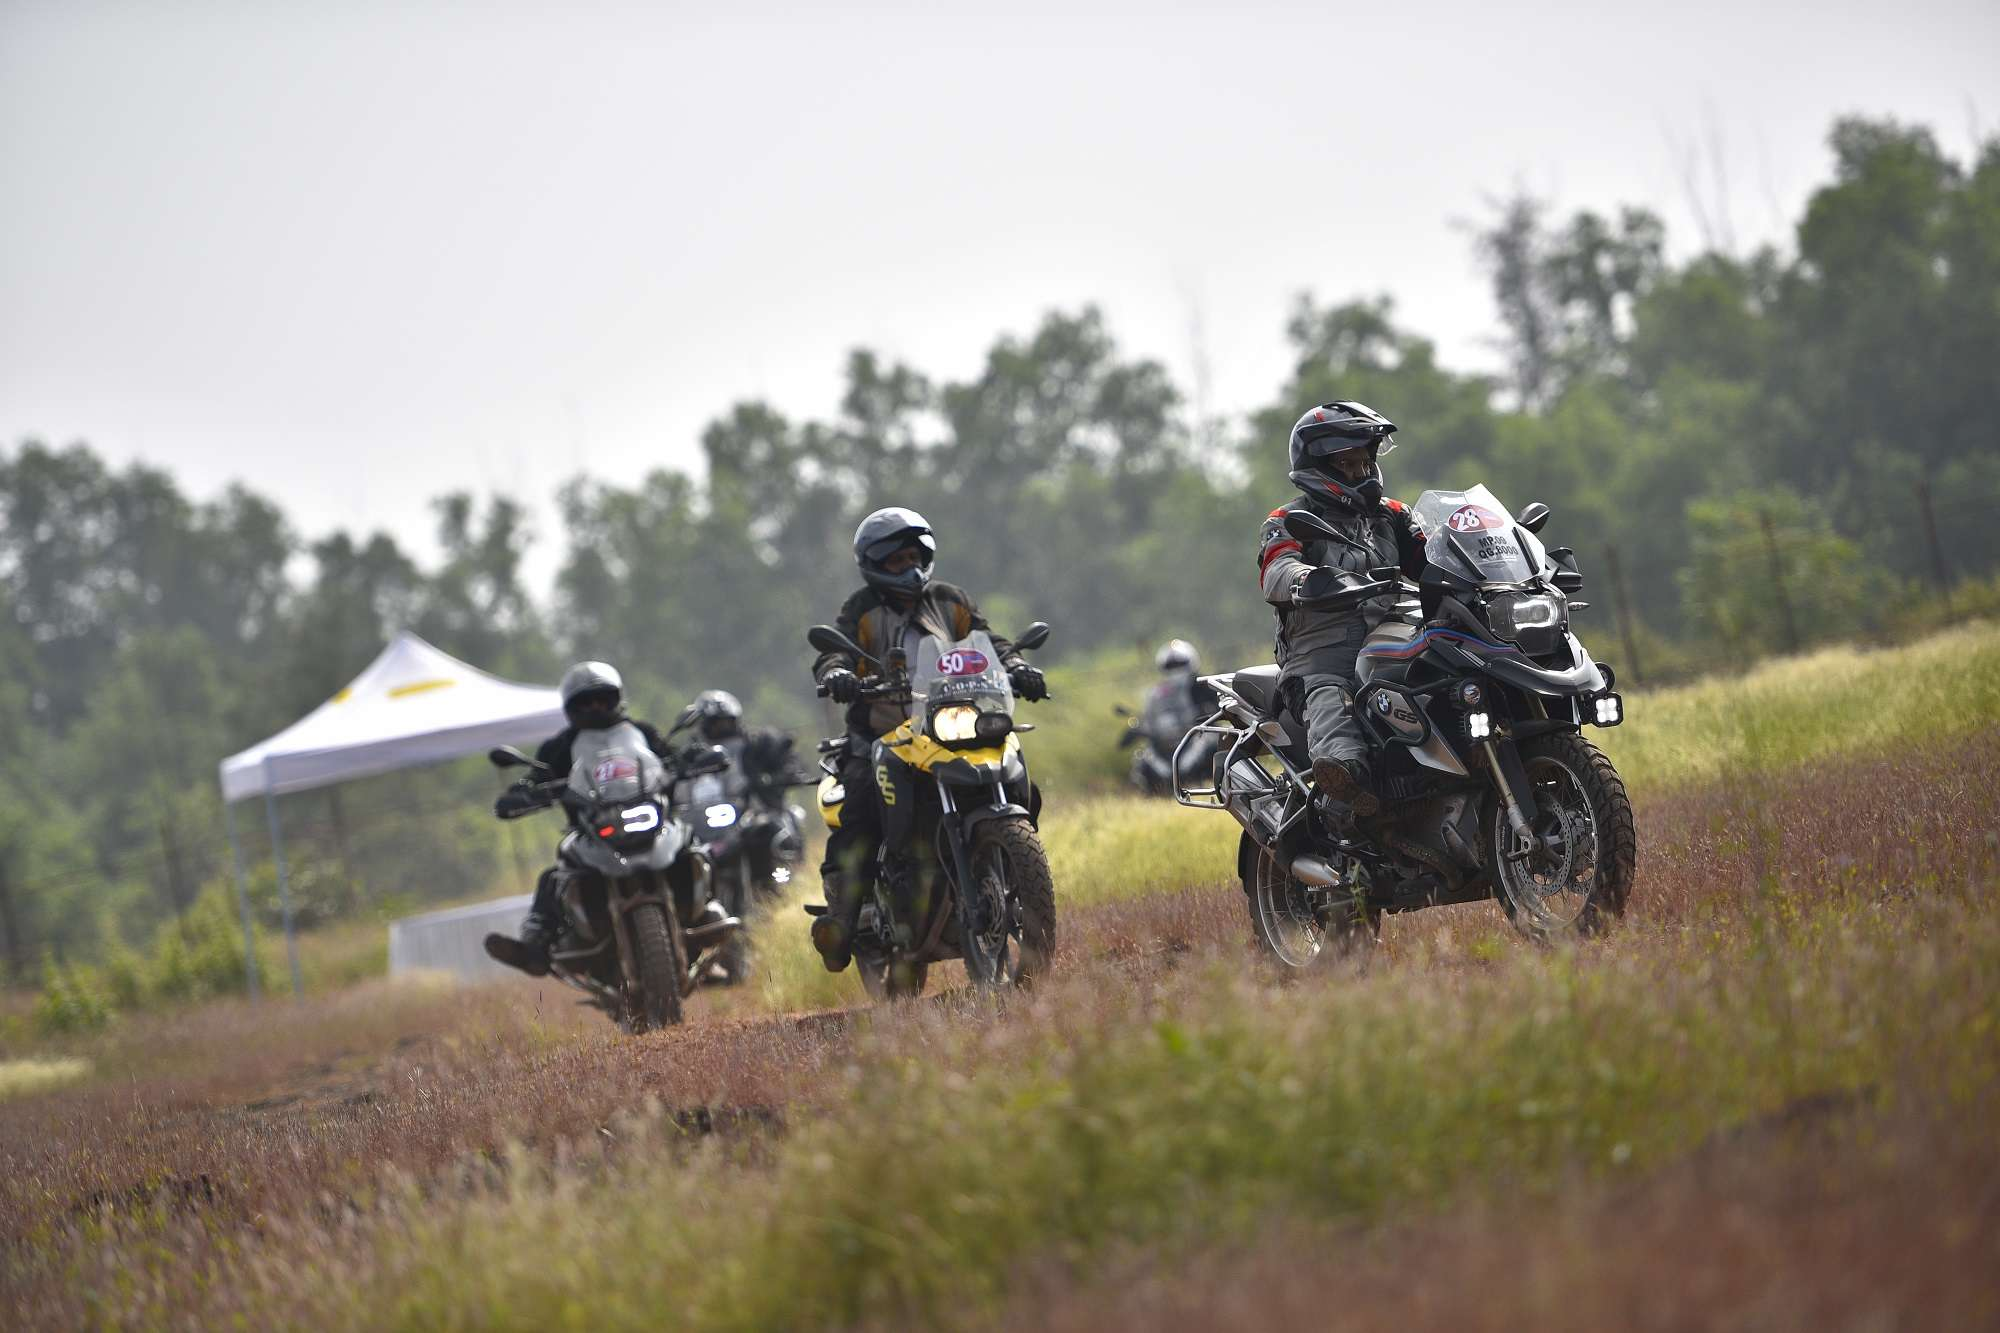 The winning team will be fully equipped by BMW Motorrad for the adventure ahead, flown to New Zealand and presented with a brand new personalized BMW GS motorcycle for each rider for duration of the event, says the company in the release.